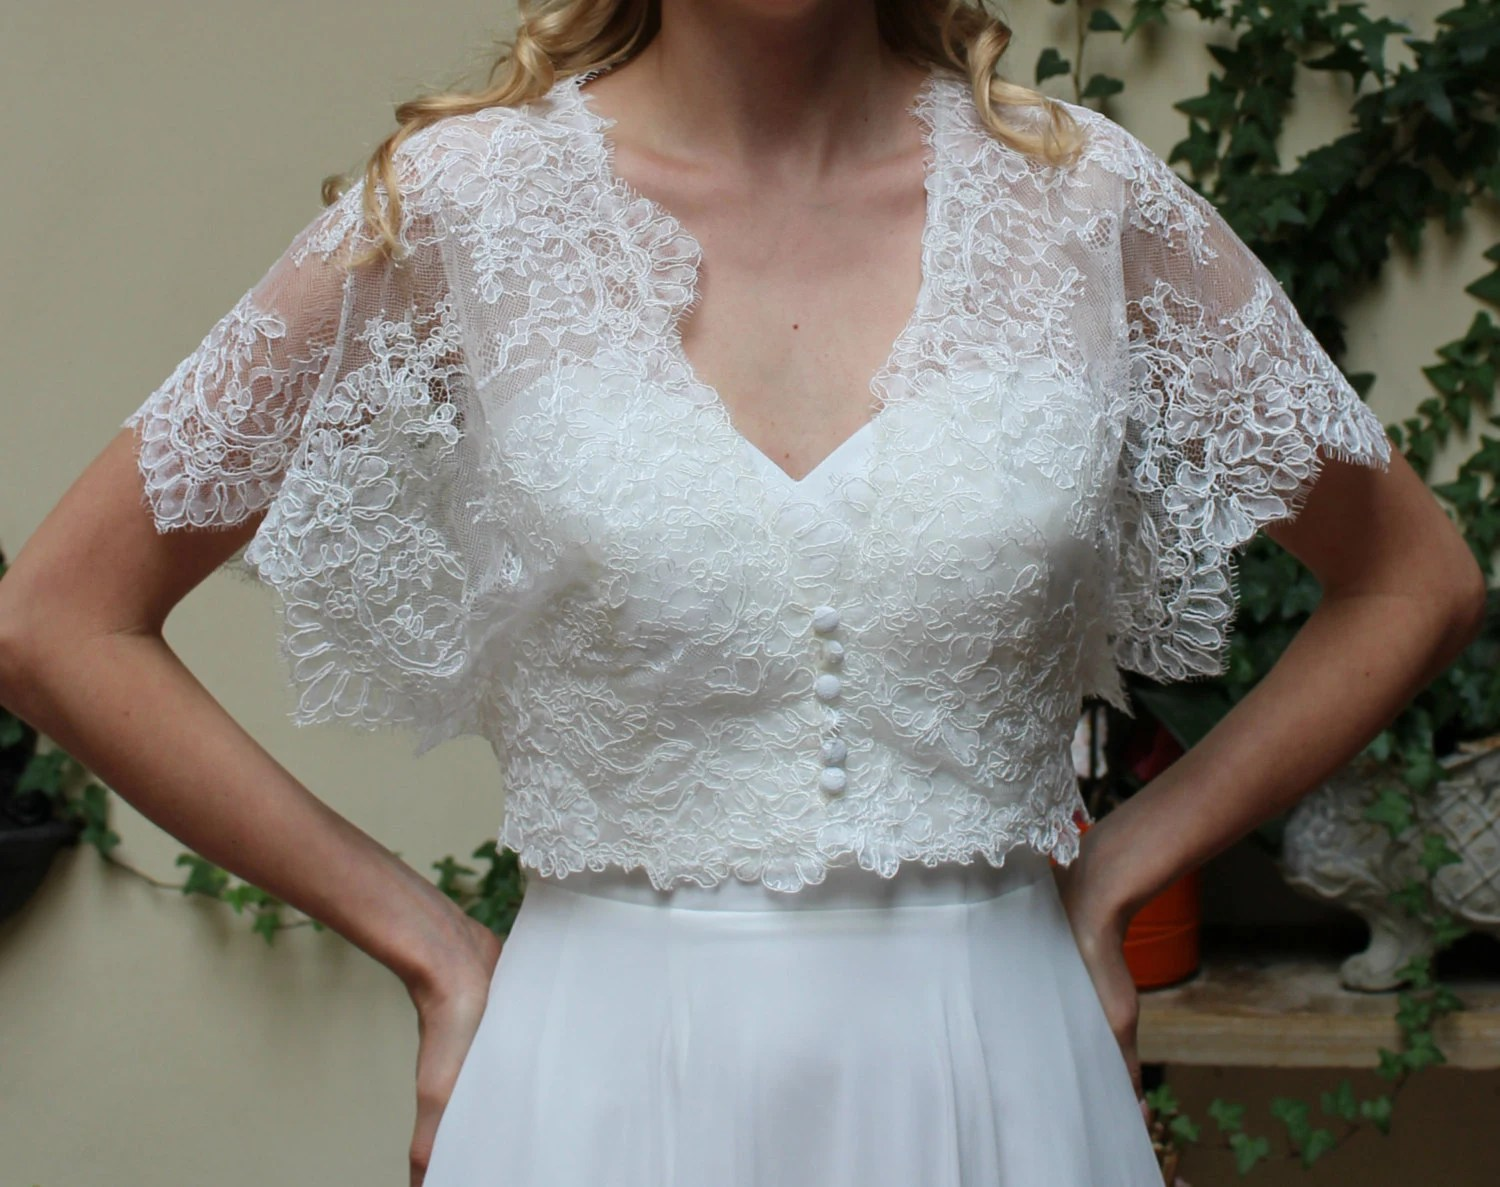 Wedding Lace Bolero Jacket Bridal Short Sleeve Romantic